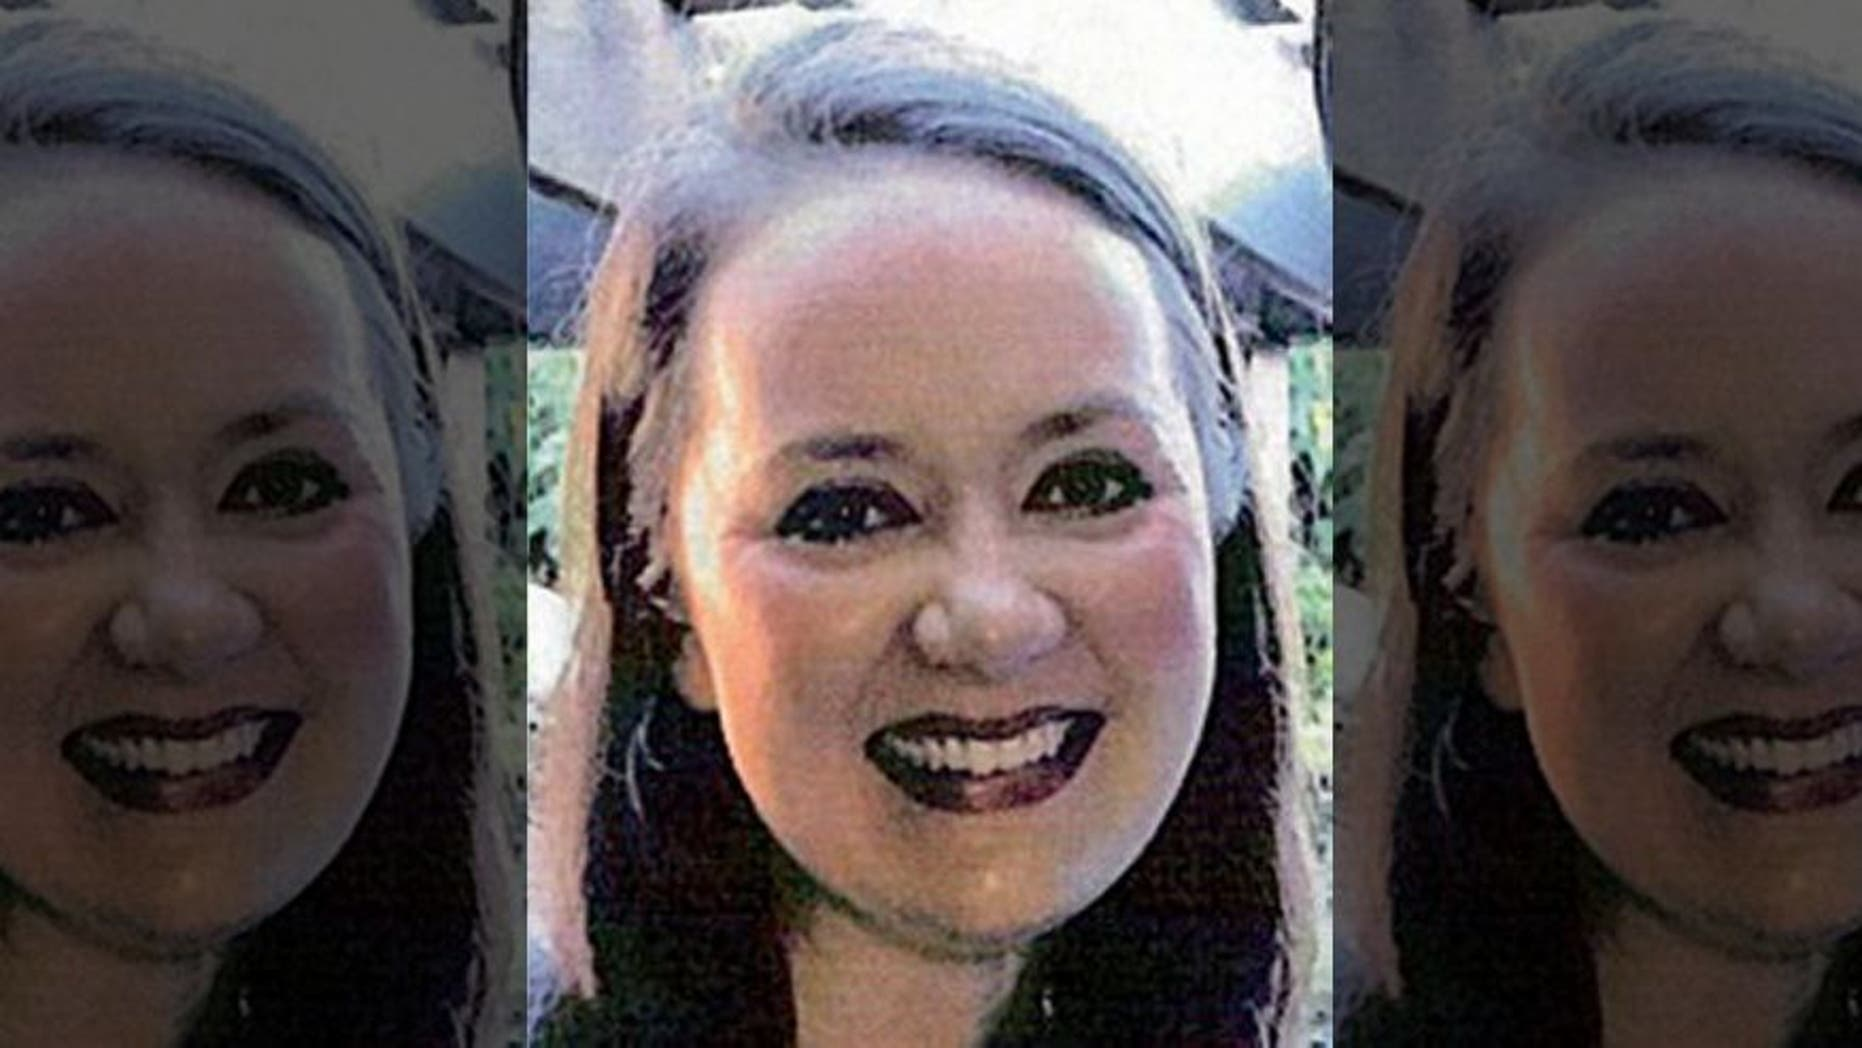 Jamie Tull had been missing since her car crashed nearly three weeks ago.